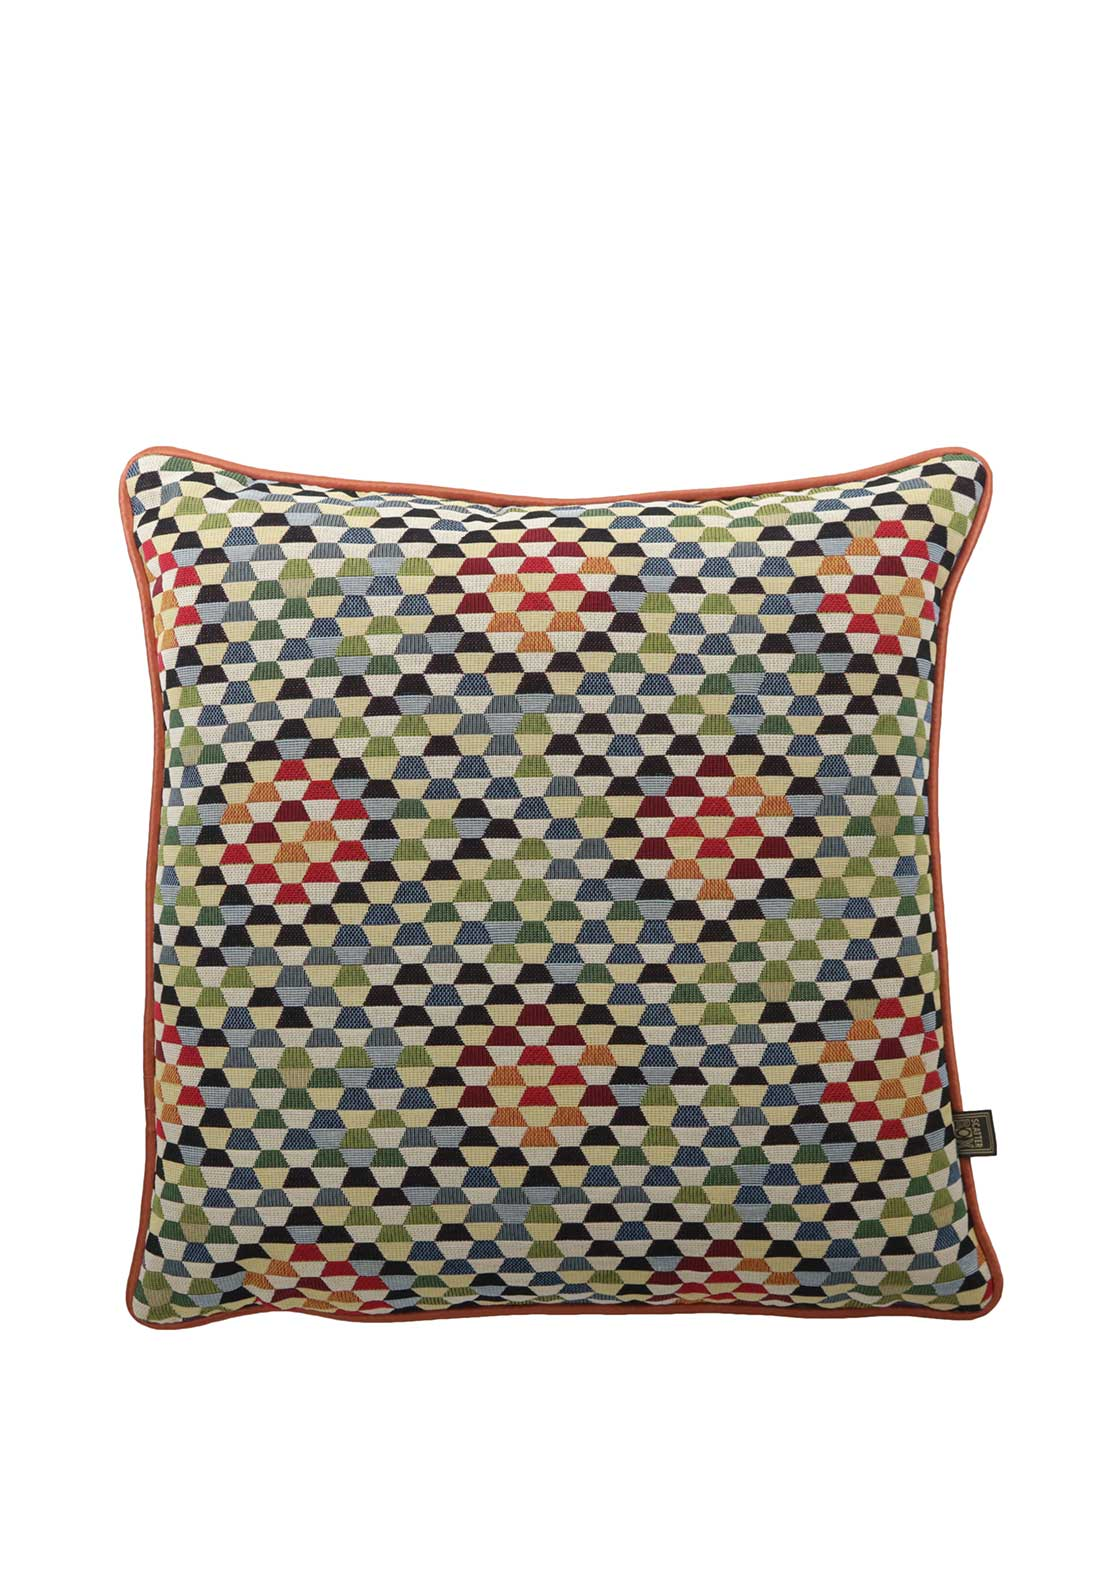 Scatterbox Zeta Cushion Multi-Coloured 43 X 43cm